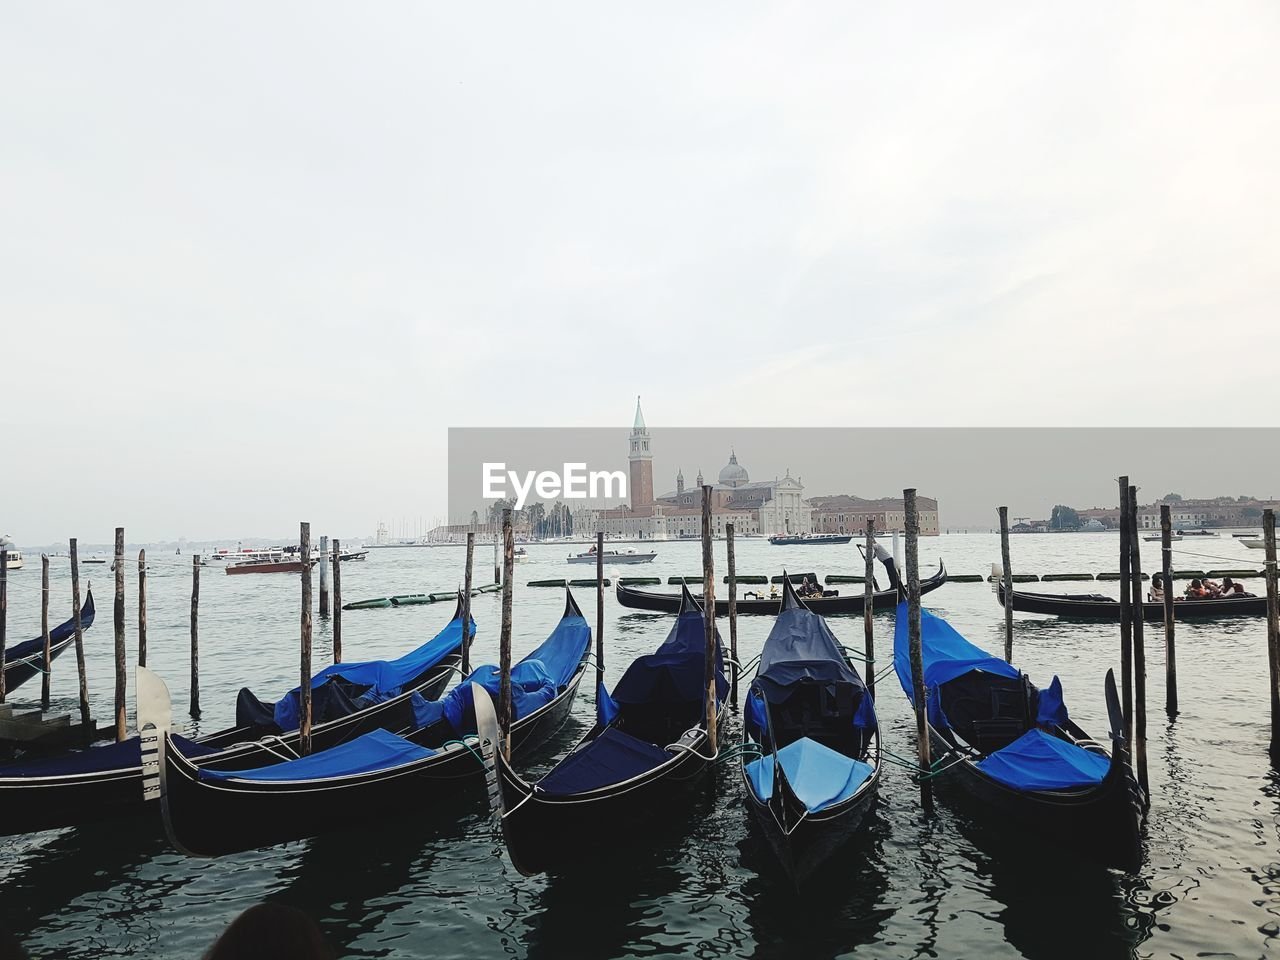 nautical vessel, water, building exterior, architecture, transportation, built structure, travel destinations, mode of transportation, sky, moored, travel, place of worship, gondola - traditional boat, tourism, nature, religion, city, day, belief, canal, post, no people, wooden post, outdoors